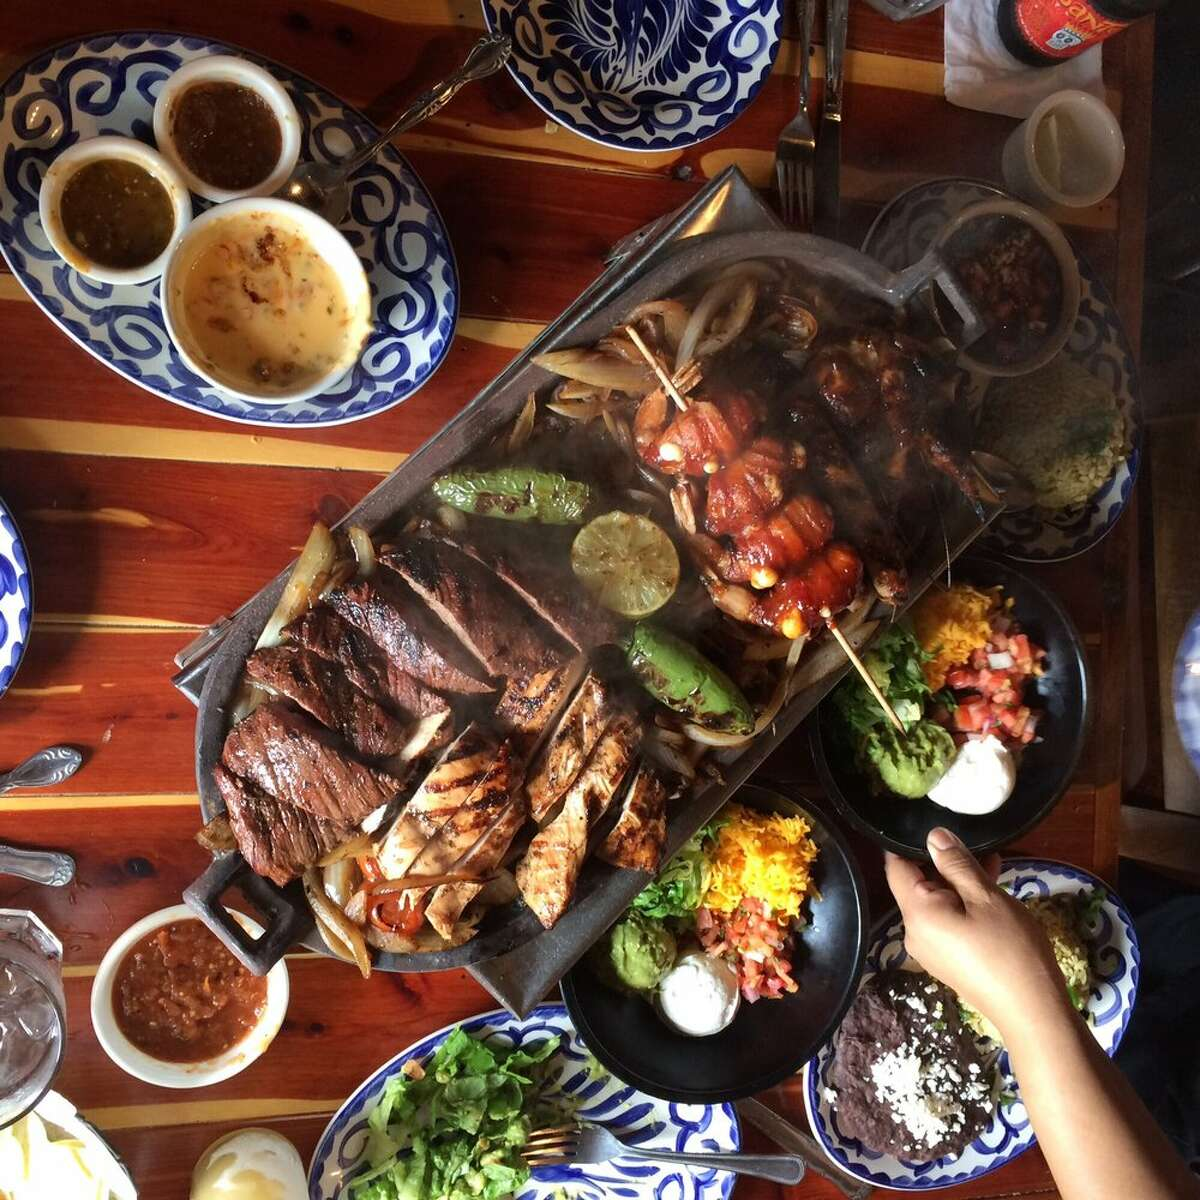 Parrillada (beef and chicken fajitas, glazed quail and shrimp brochette) at Skinny Rita's Grille, 4002 N. Main, Houston. Skinny Rita's Grille will open a second location in December 2015 at 607 W. Gray.